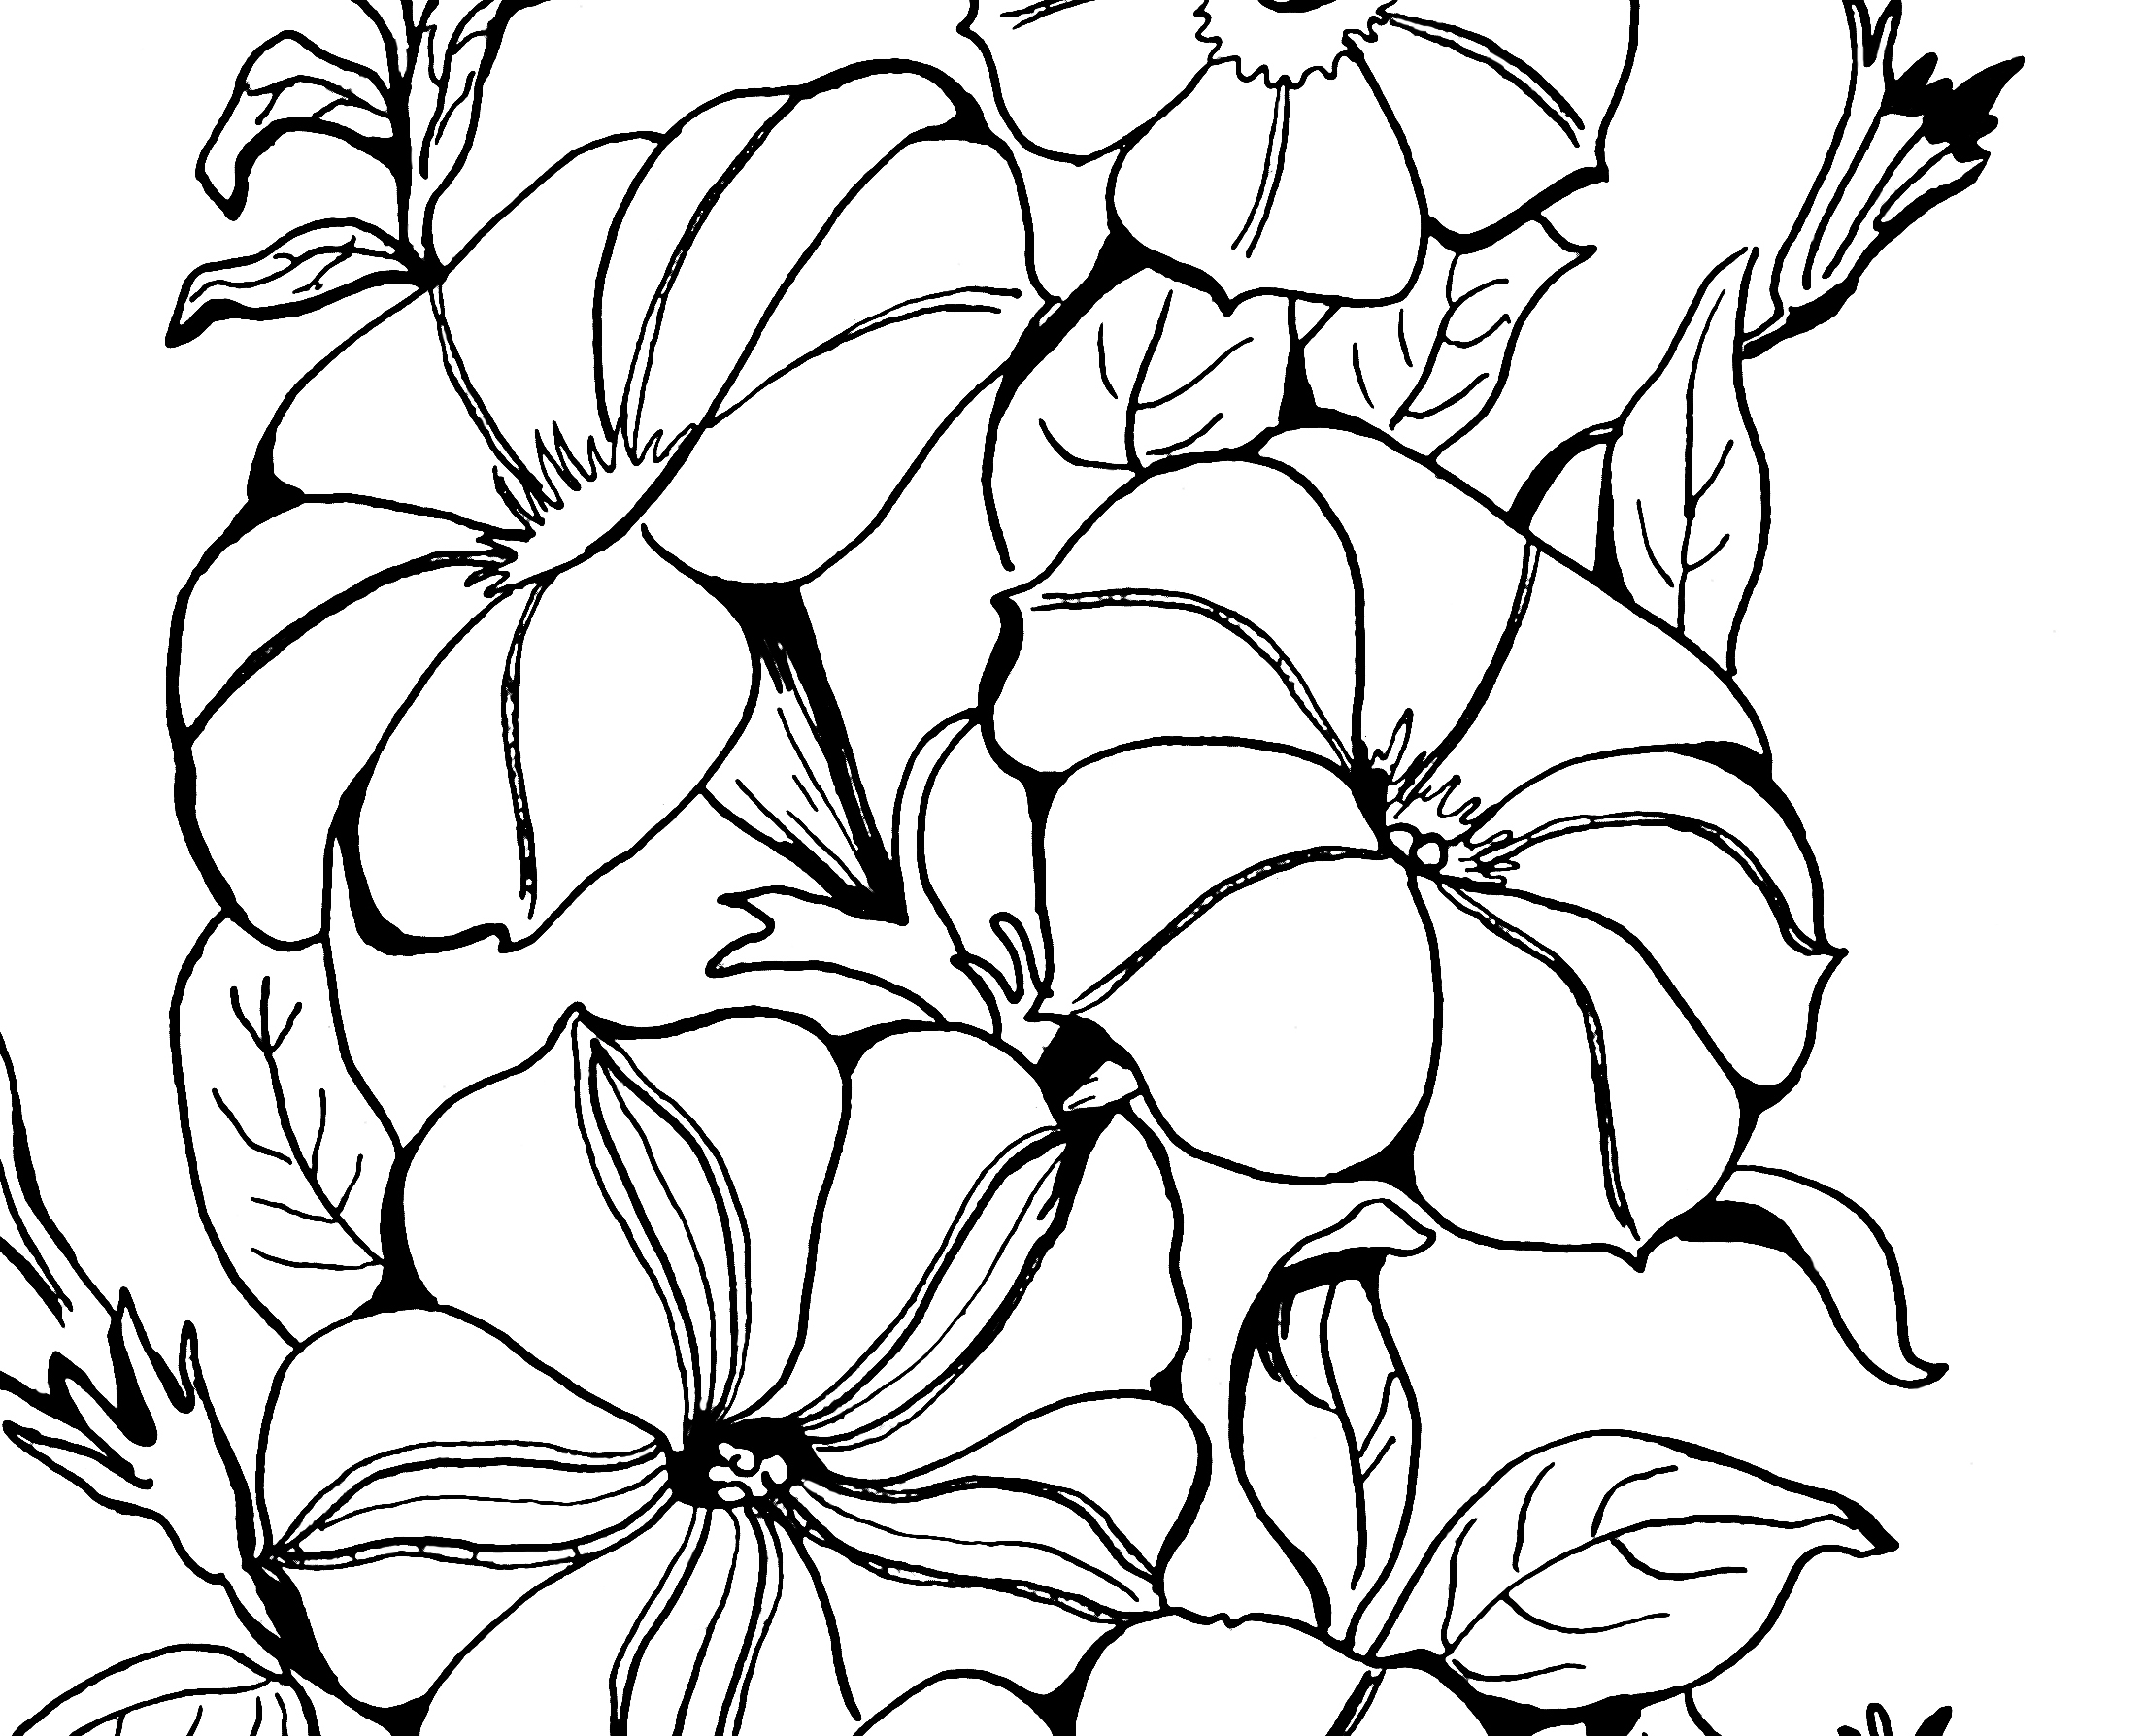 black and white coloring pages for adults adult coloring page petunias the graphics fairy black for white and coloring adults pages